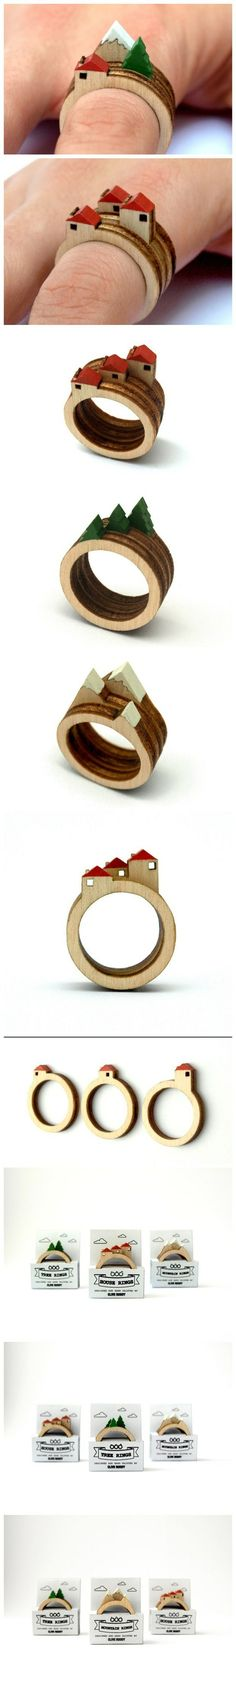 Lovely wooden rings